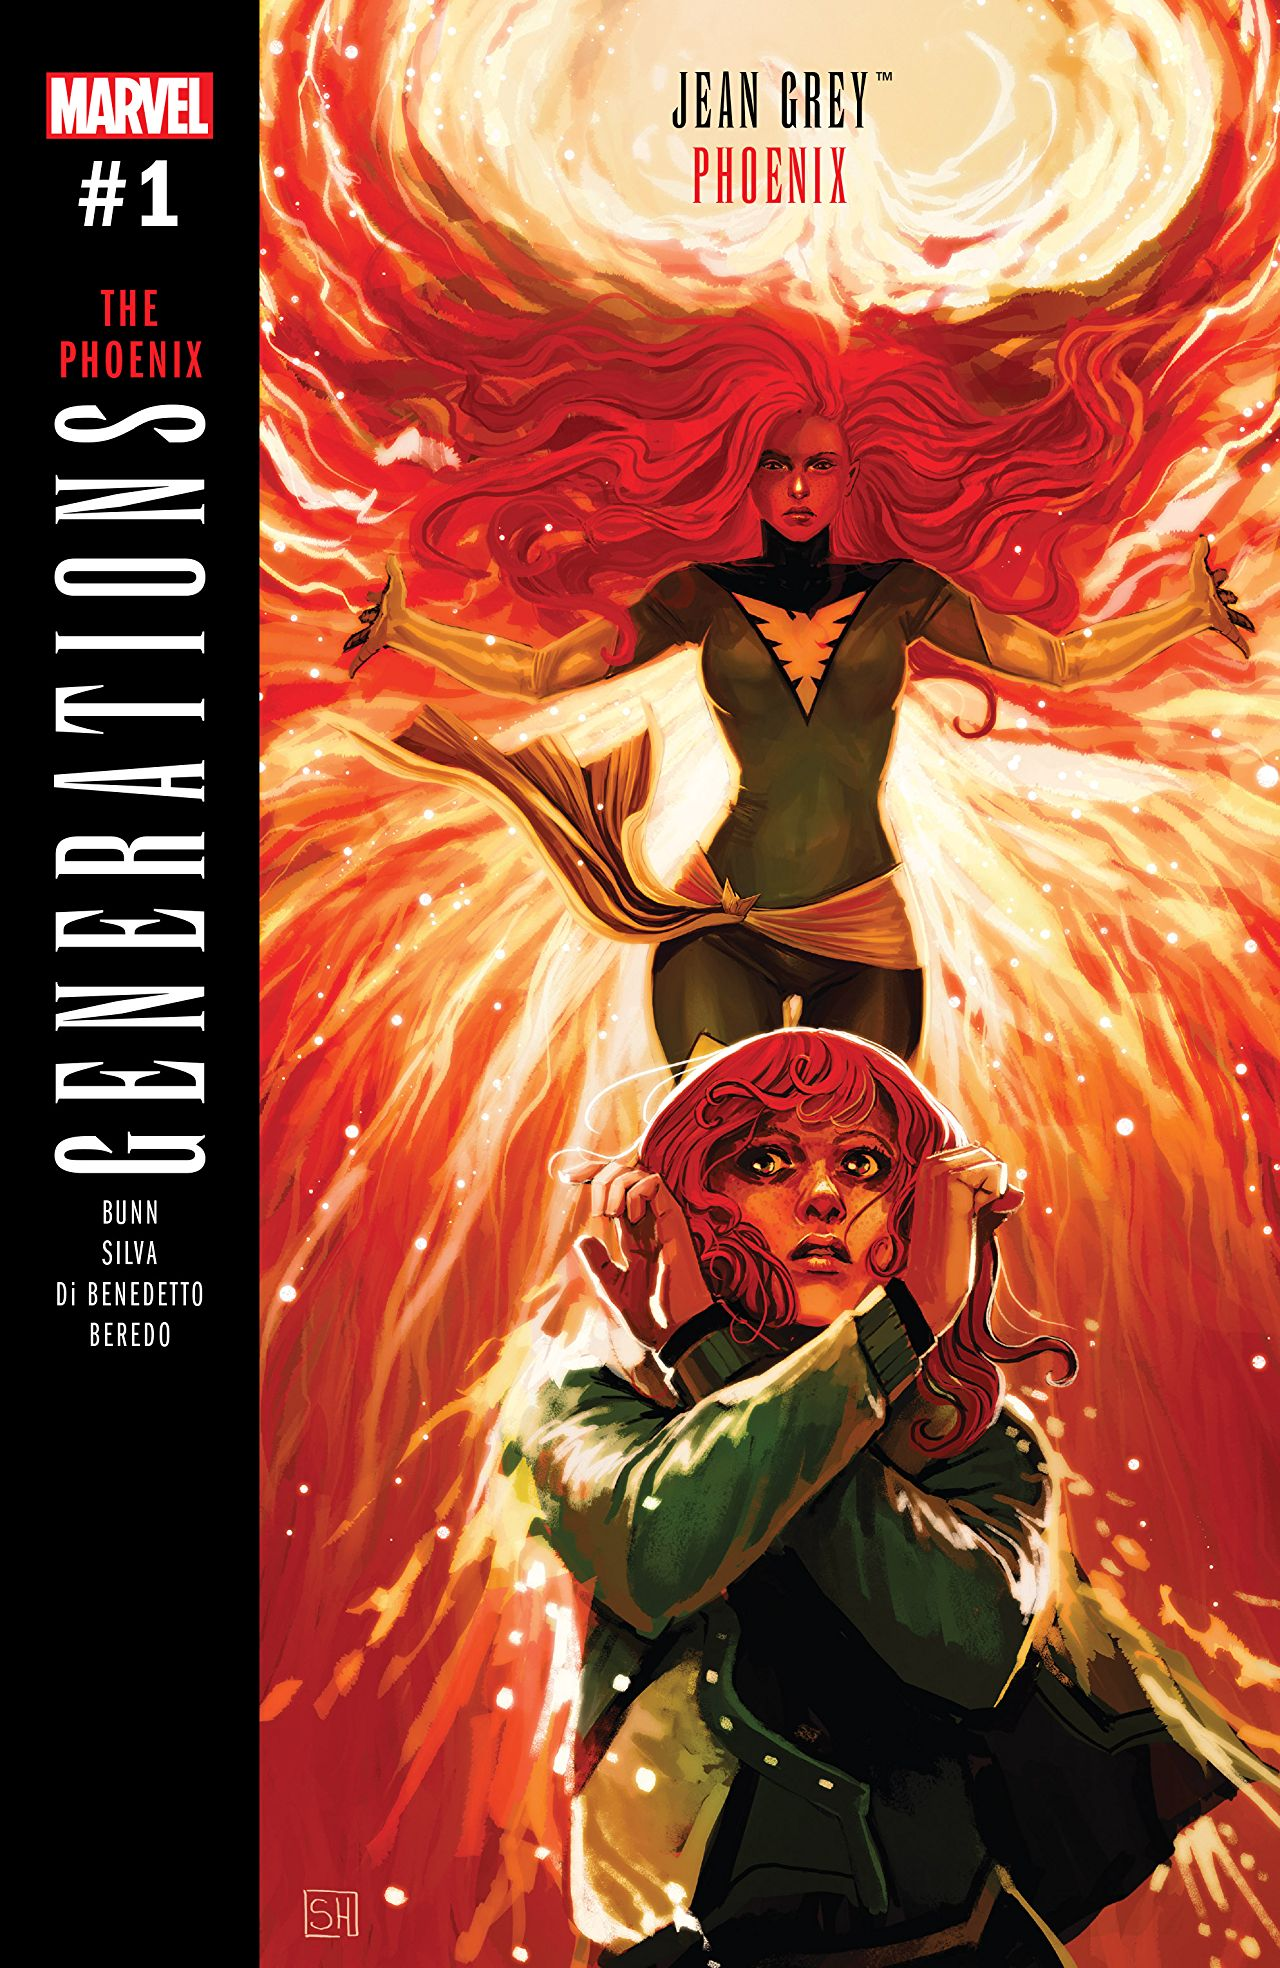 Generations: Phoenix & Jean Grey #1 review: Destruction never felt so right